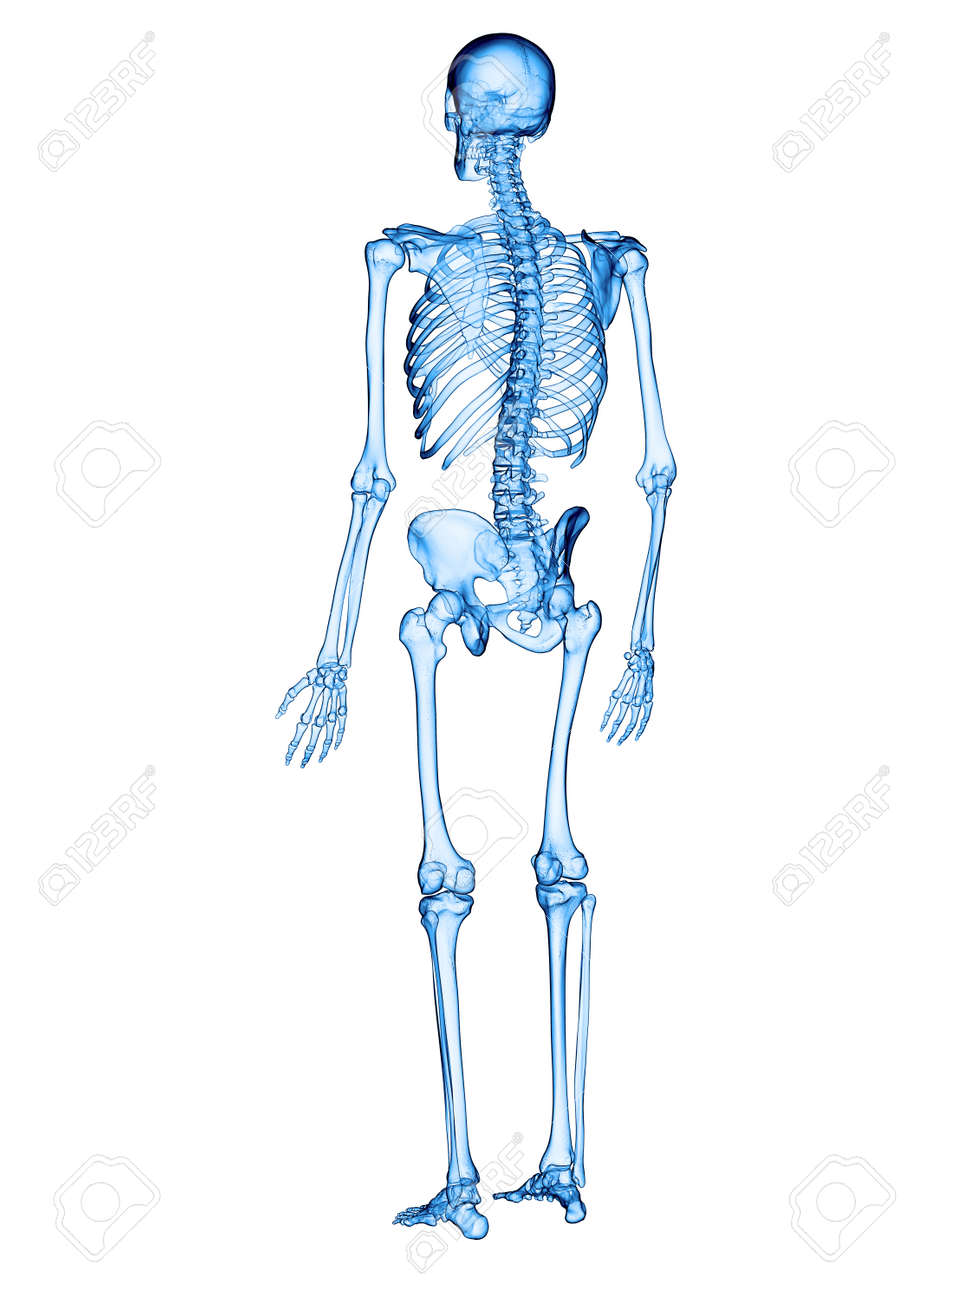 Accurate Medical Illustration Of The Human Skeleton Stock Photo